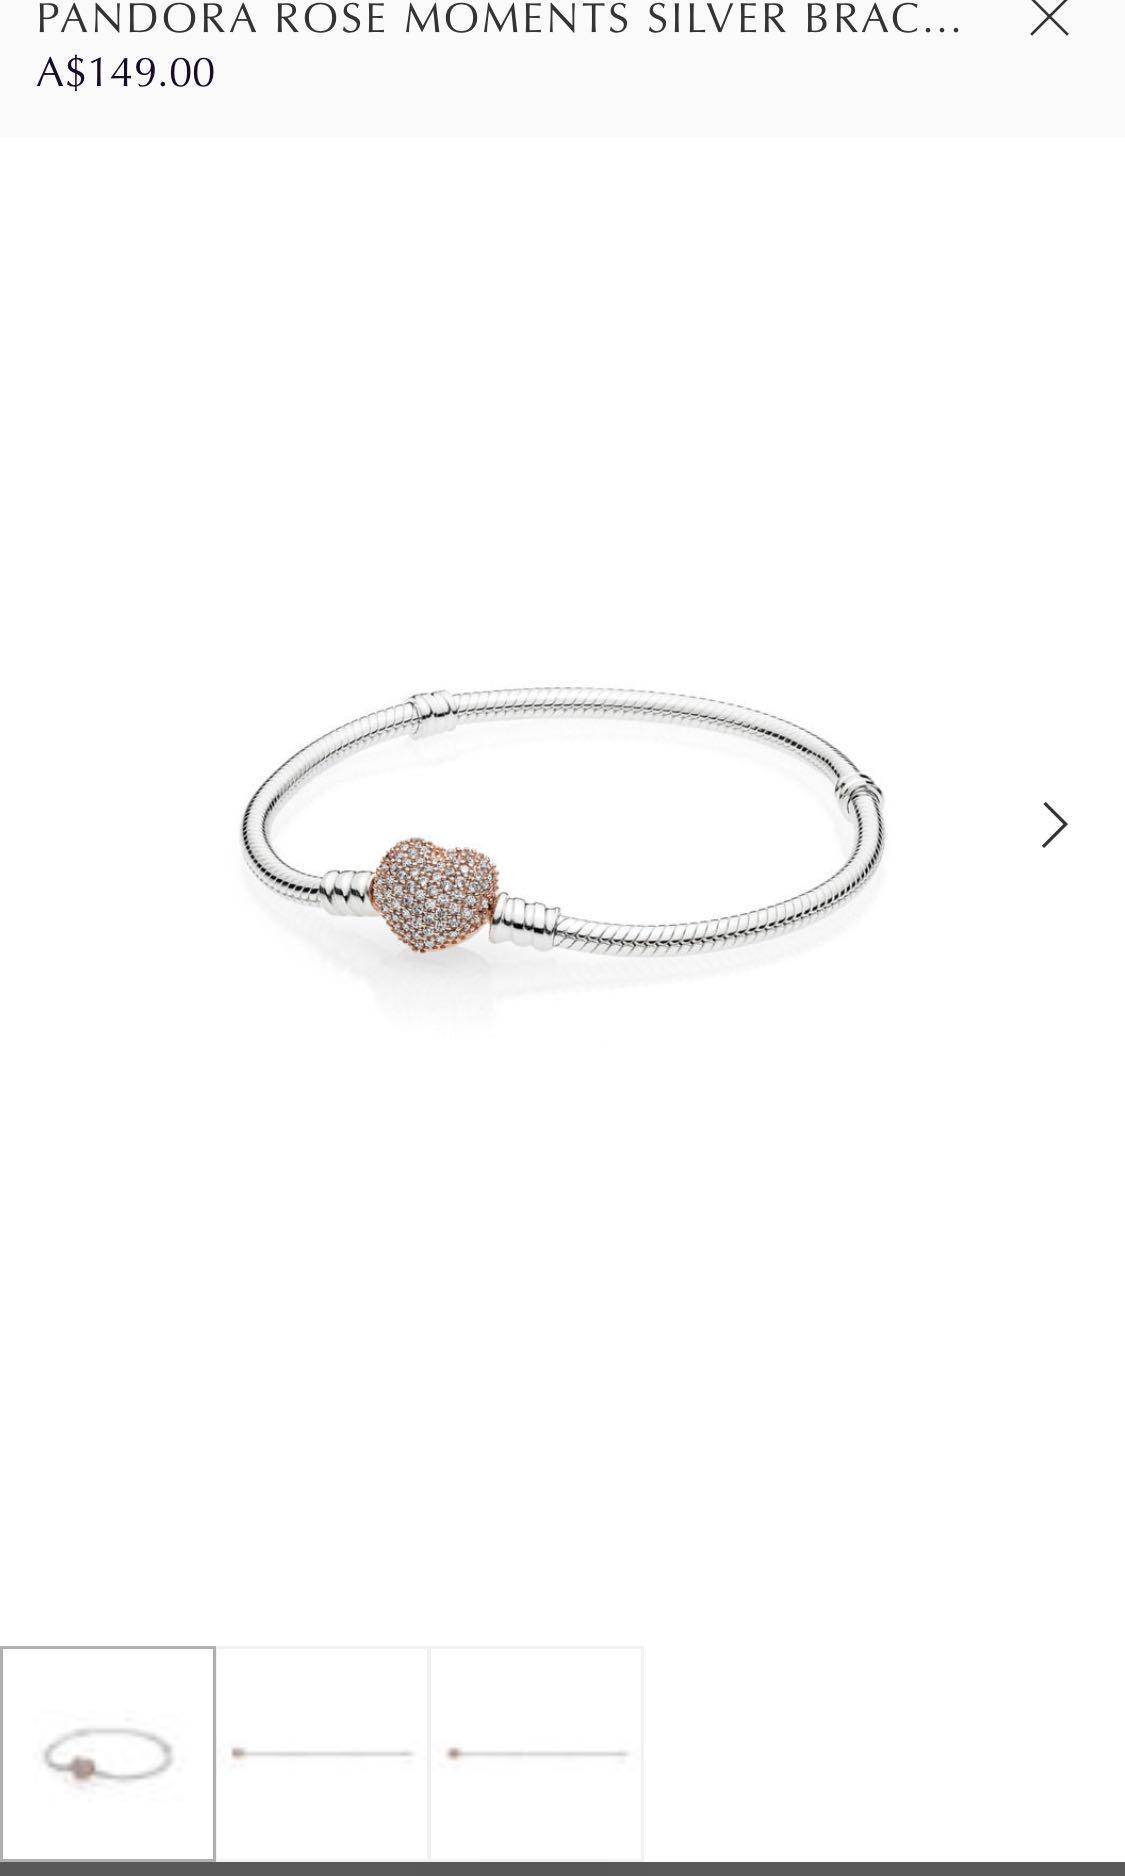 PANDORA ROSE MOMENTS SILVER BRACELET WITH PANDORA ROSE PAVÉ HEART CLASP